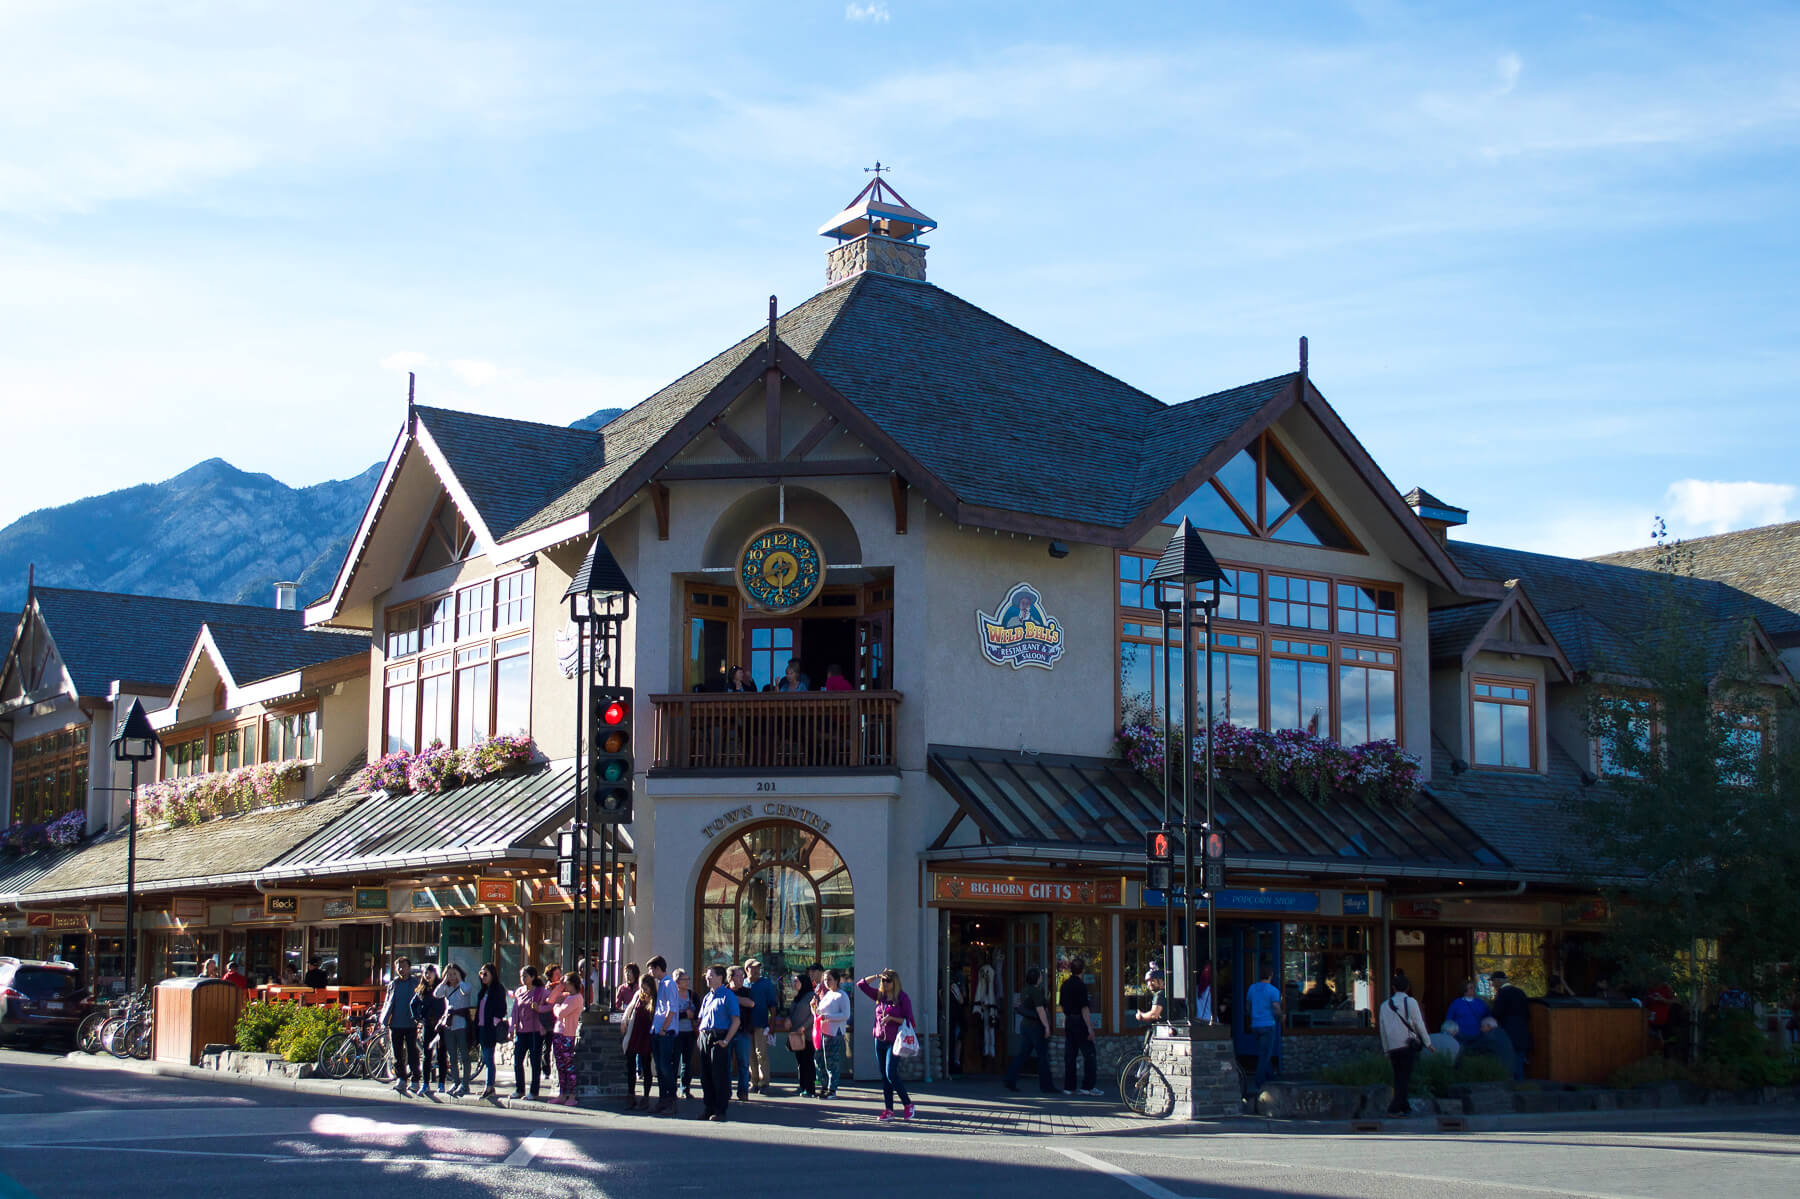 A large building in the main street of Banff